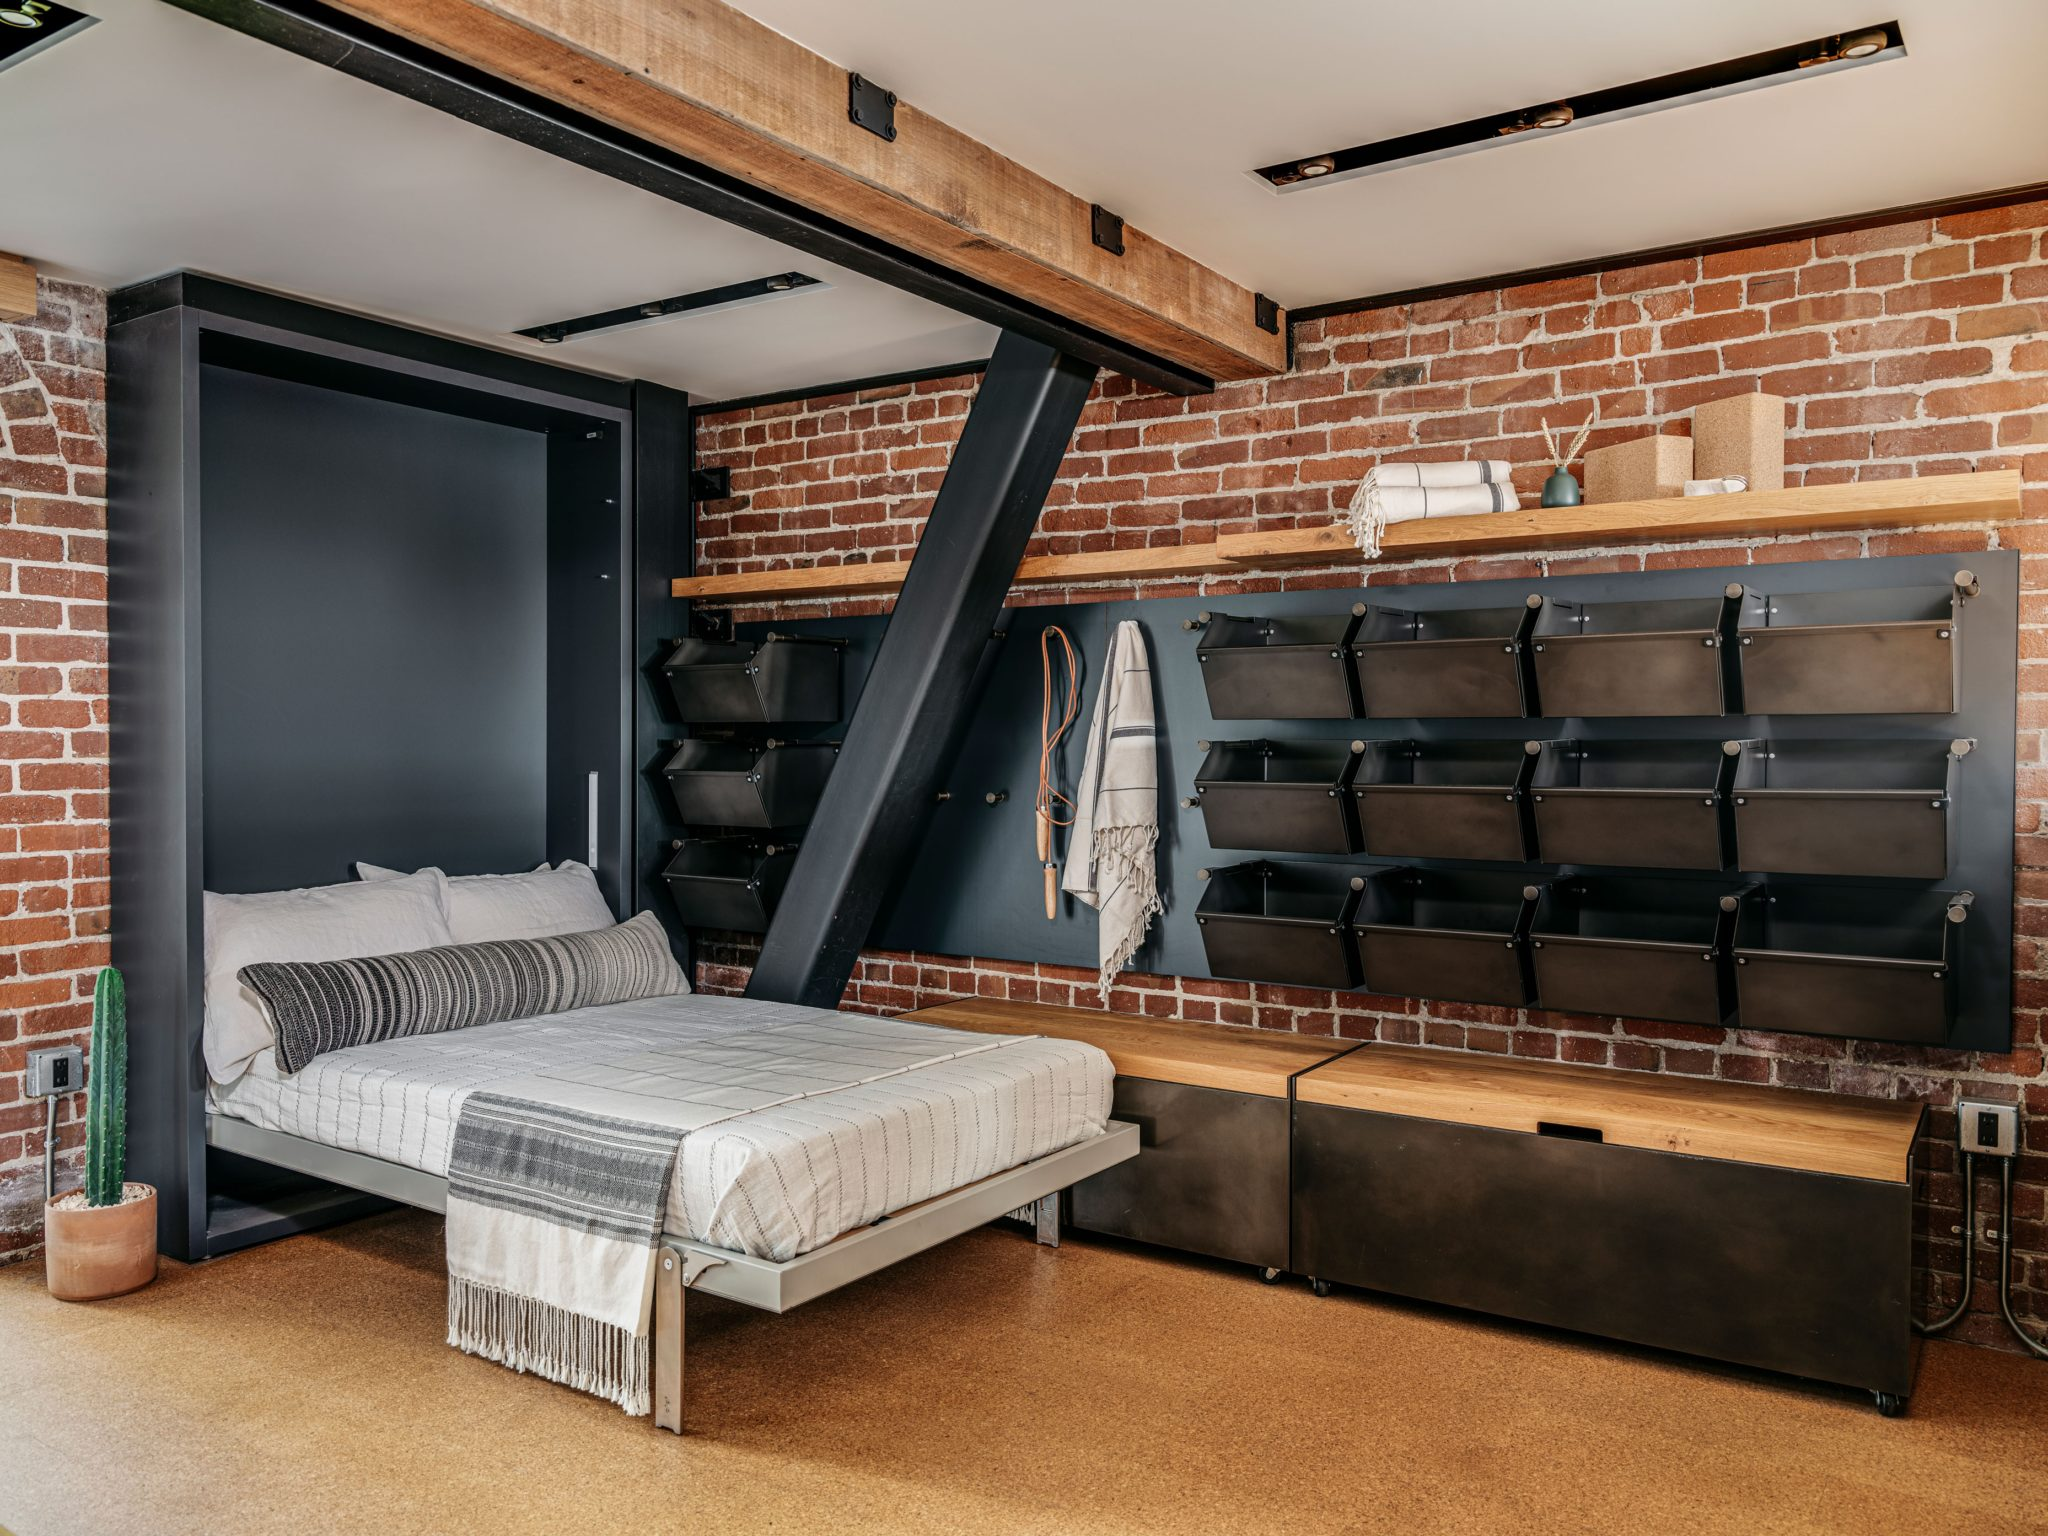 Functioning as a guest room as well, the den featuresa Murphy bed. When the bed isfolded into the wall, the space transforms into a space for lounging or working out. The Henrybuilt system can store both guests' luggage and workout gear.